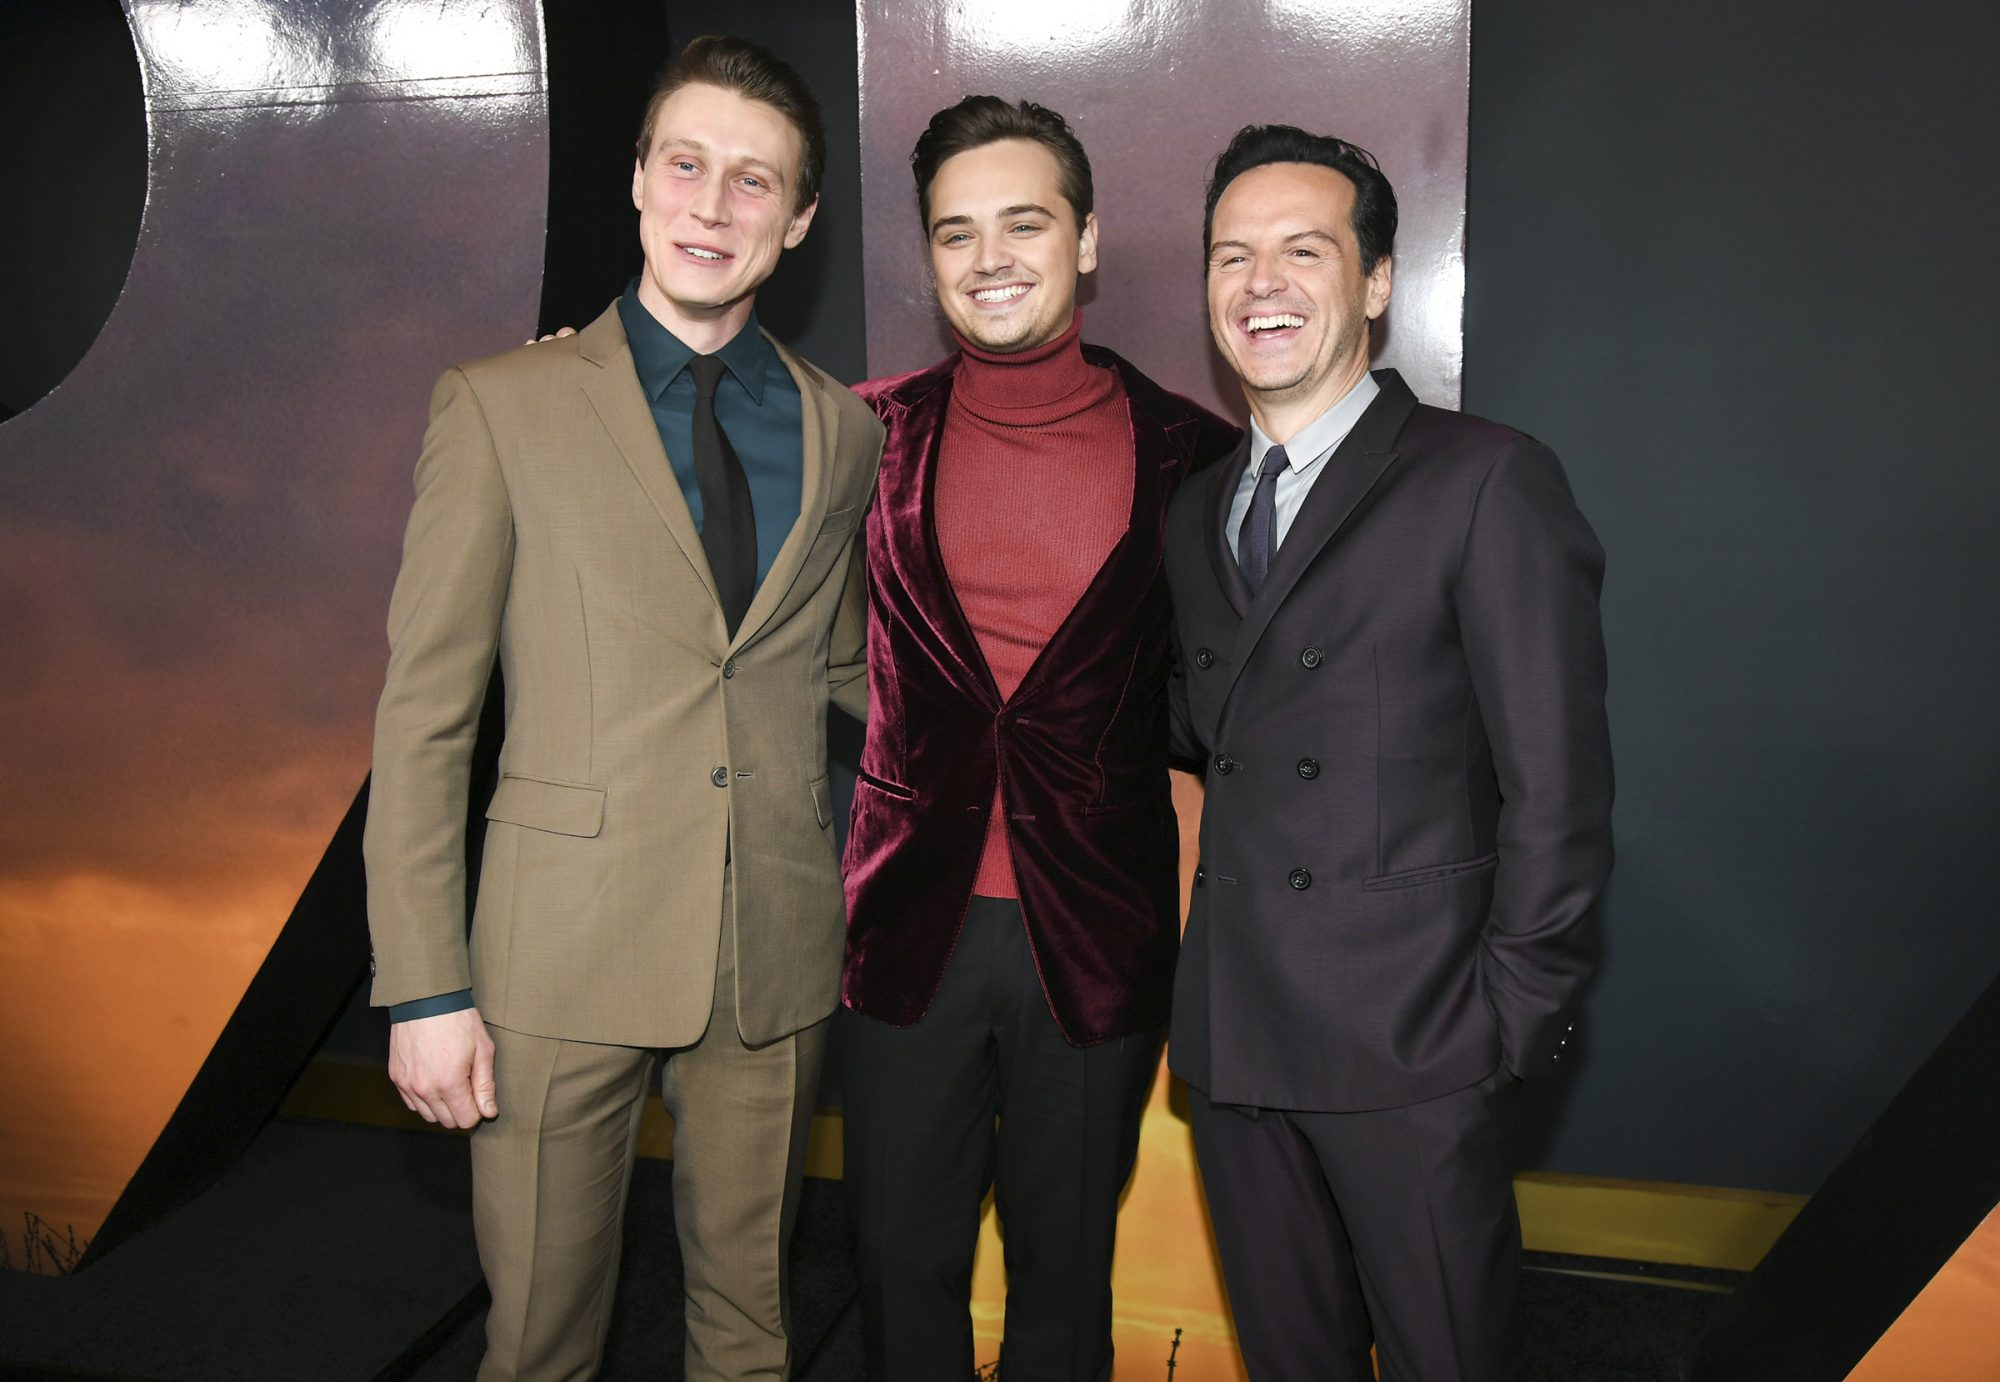 George MacKay, Dean-Charles Chapman and Actor Andrew Scott